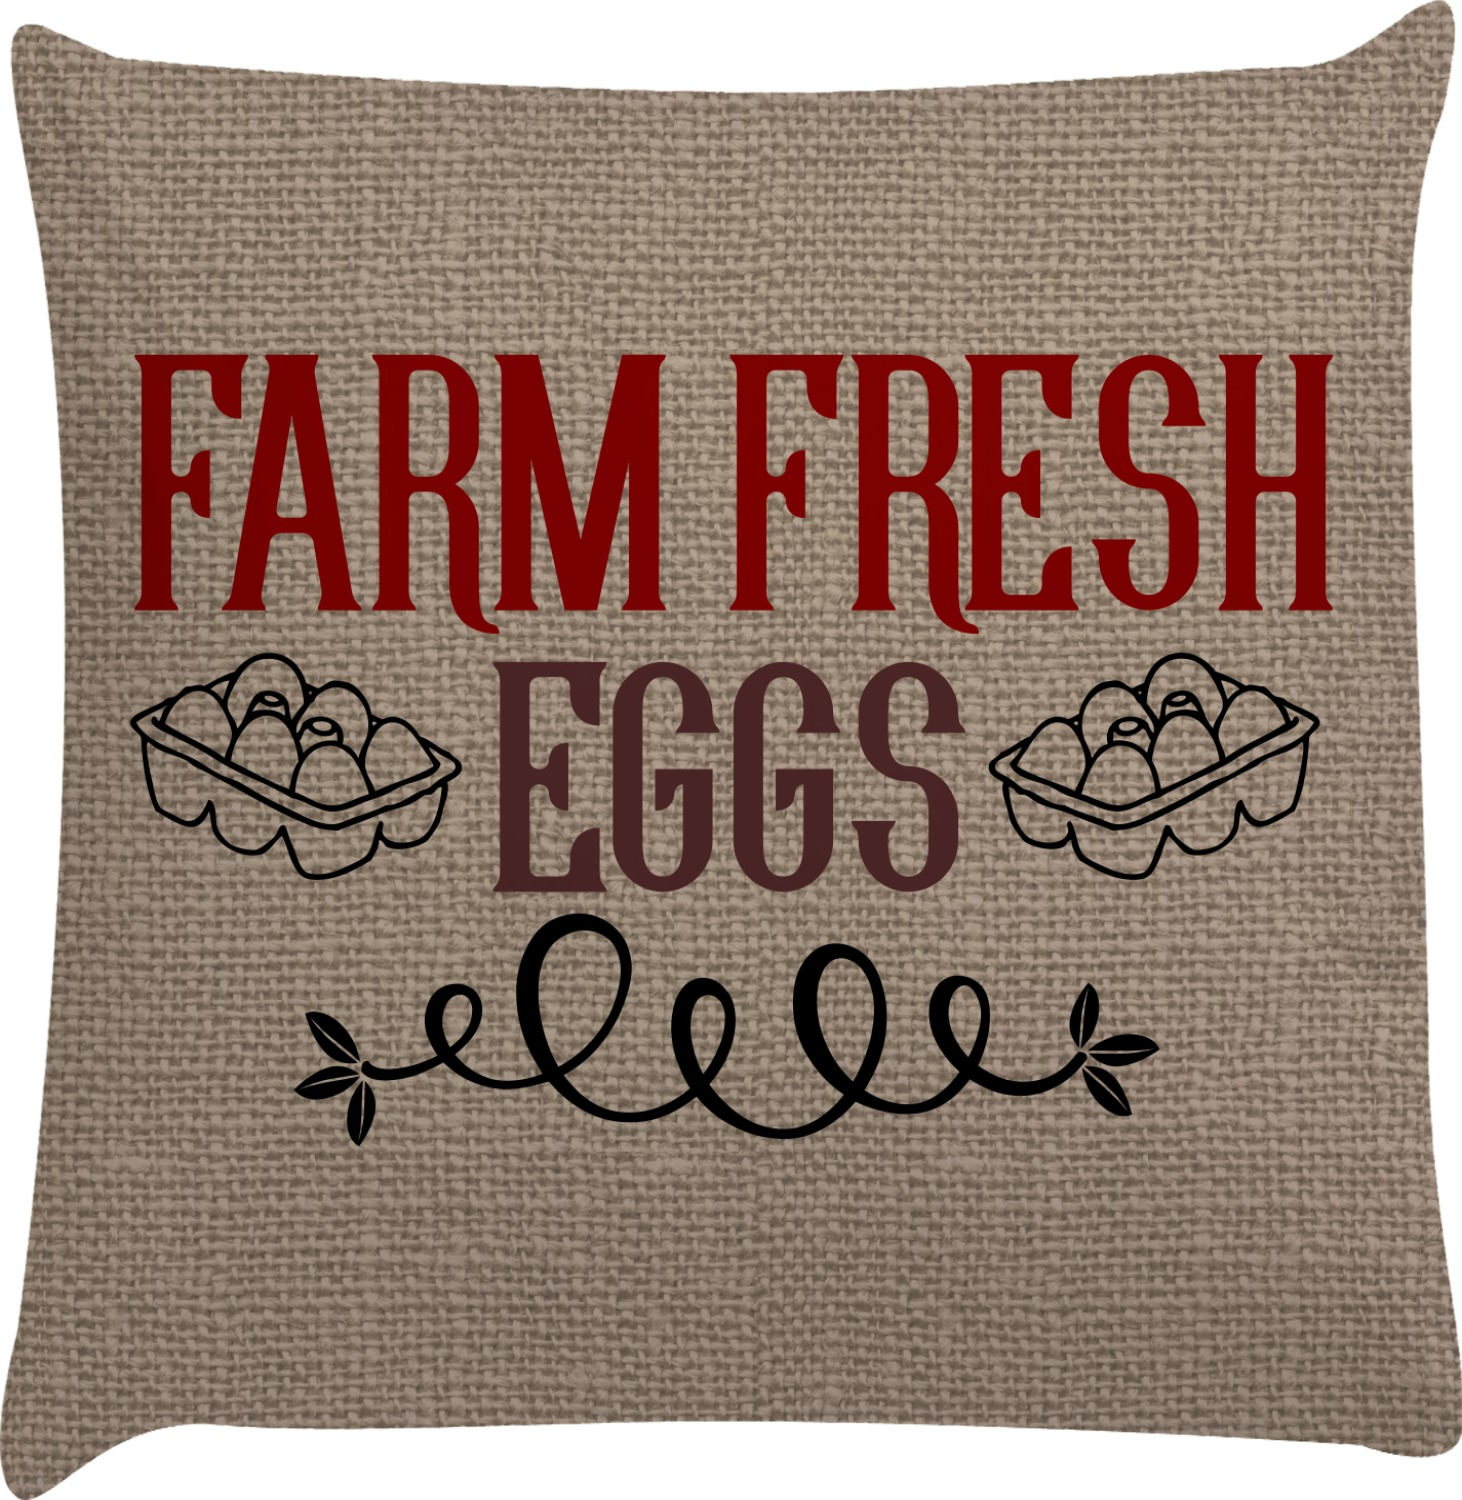 Decorative Pillows With Quotes : Farm Quotes Decorative Pillow Case (Personalized) - YouCustomizeIt